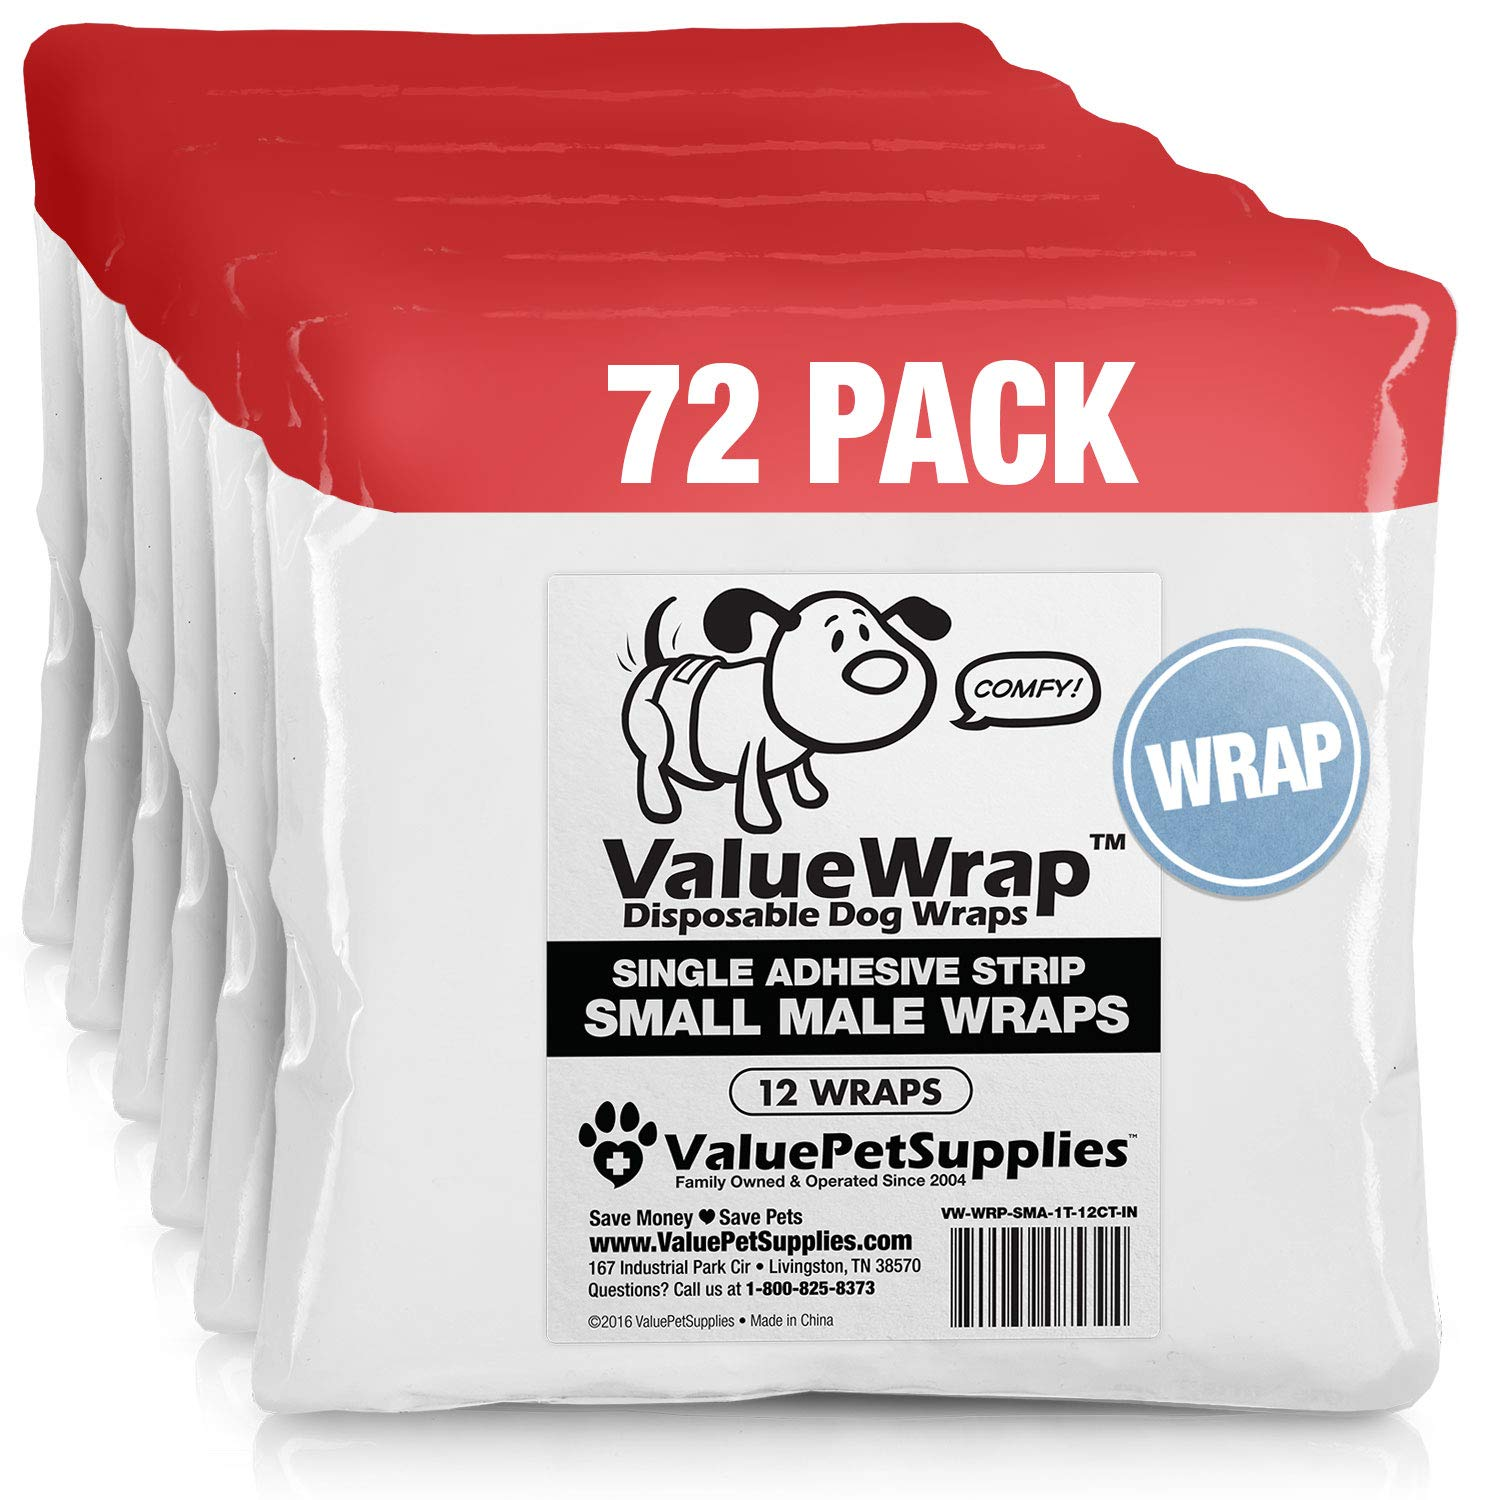 ValueWrap Disposable Male Dog Diapers, 1-Tab Small, 72 Count - Absorbent Male Wraps for Incontinence, Excitable Urination & Travel | Fur-Friendly Fastener | Leak Protection | Wetness Indicator by ValueWrap